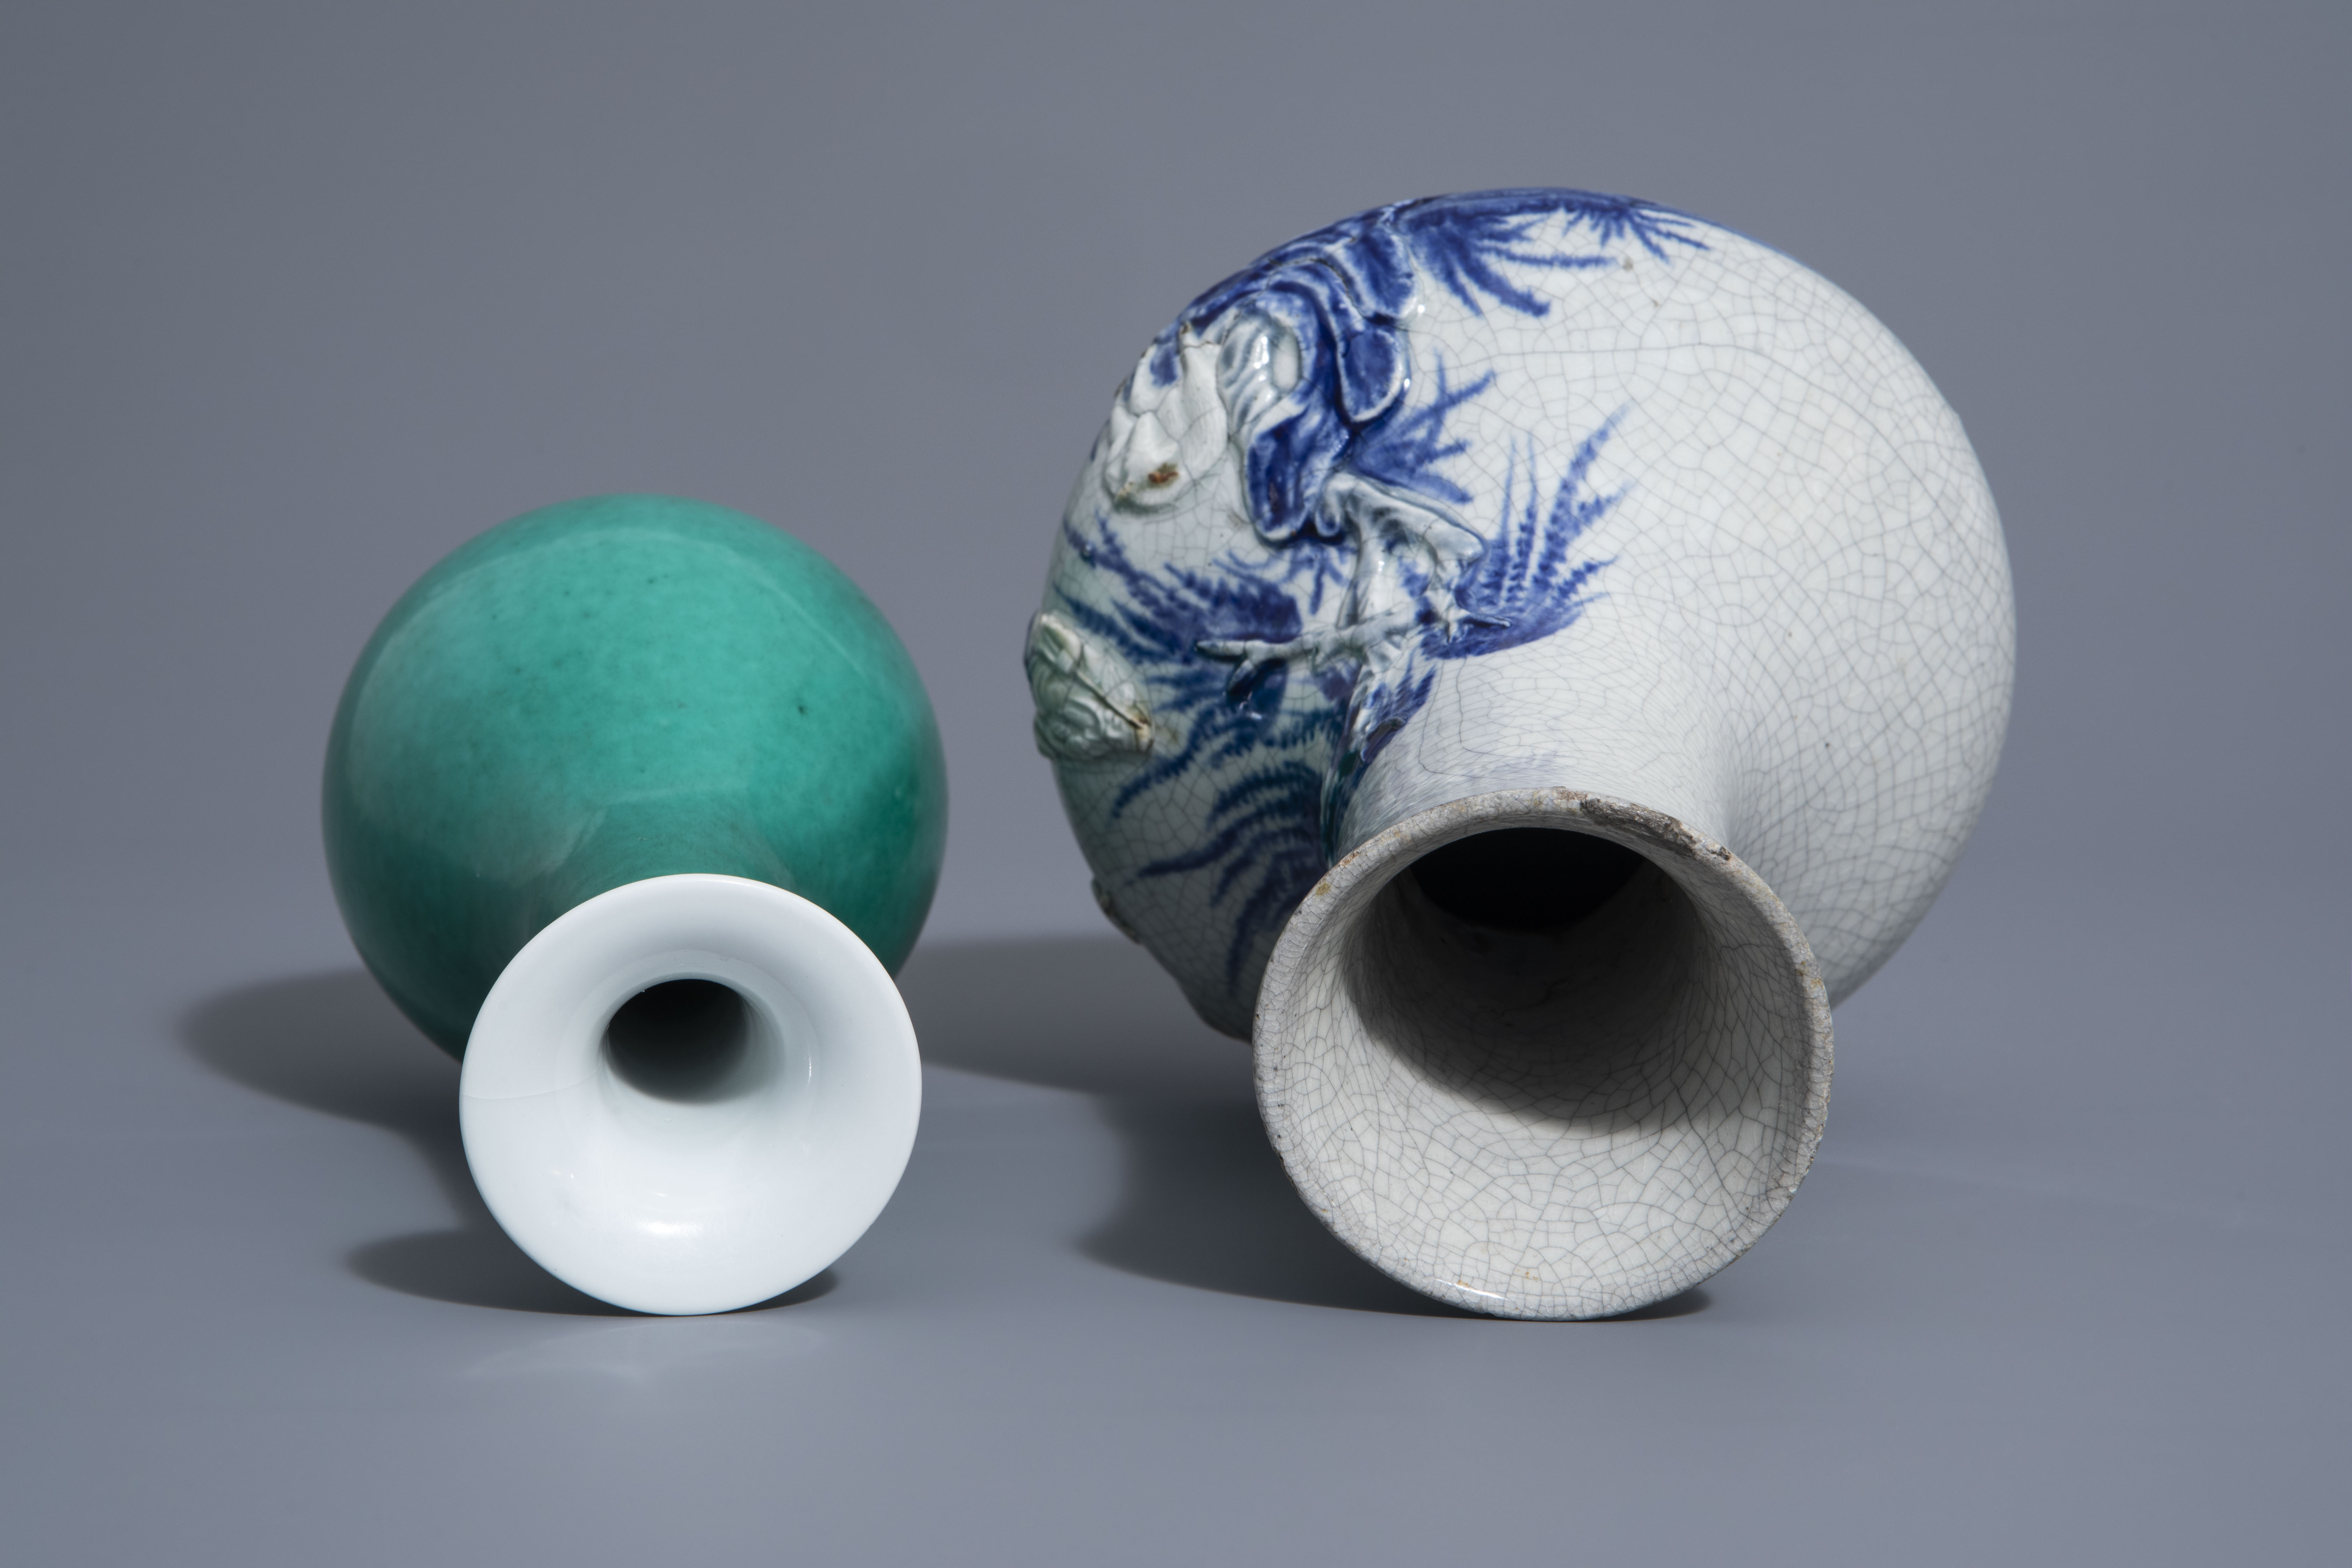 A Chinese blue & white crackle glazed vase, a monochrome green vase and a brushwasher, 19th/20th C. - Image 6 of 13